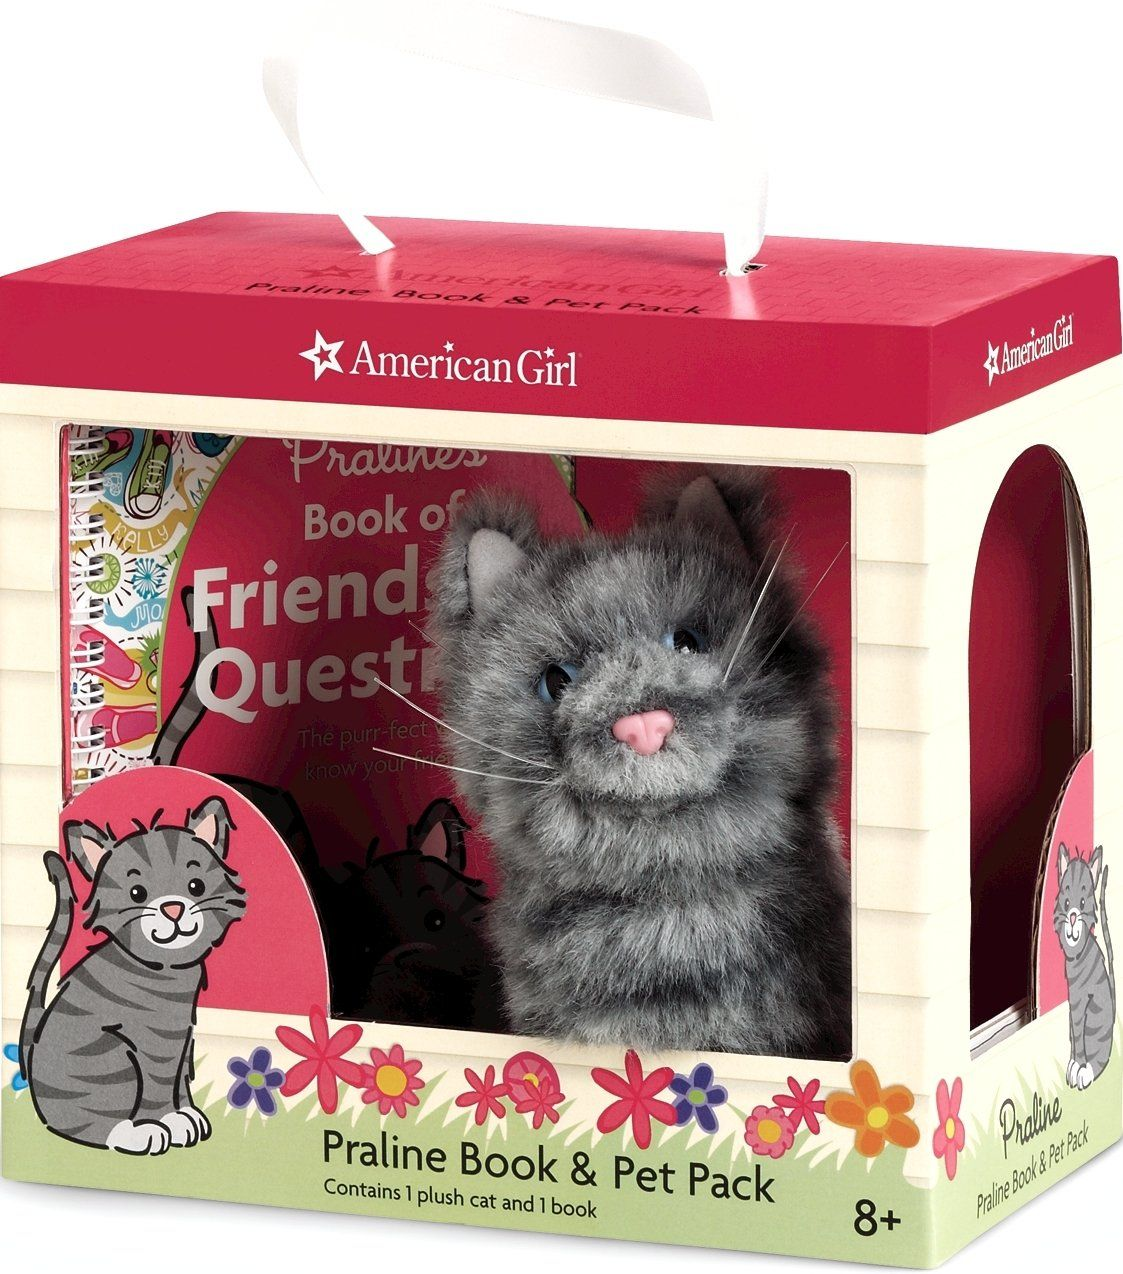 Robot Check Cats Cats And Kittens American Girl